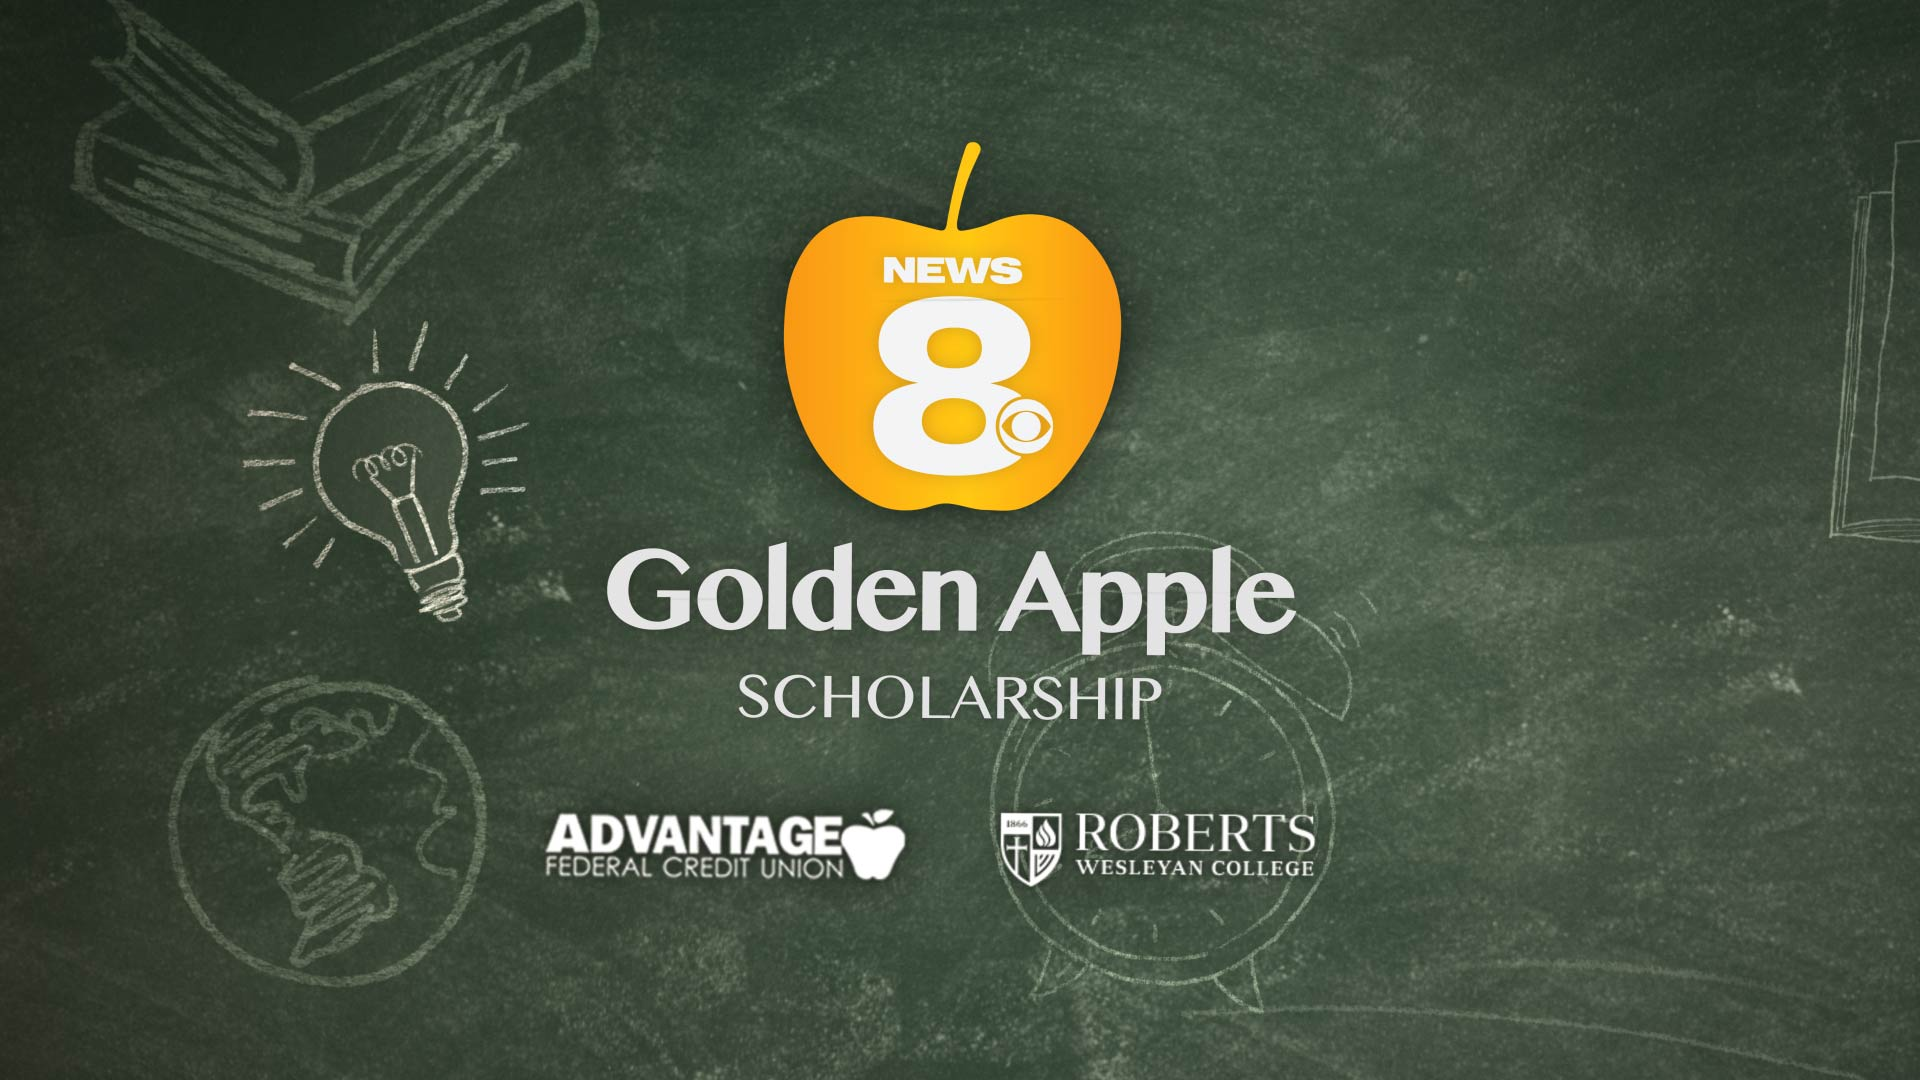 Golden apple scholarship rochester ny rochesterfirst search 1betcityfo Choice Image